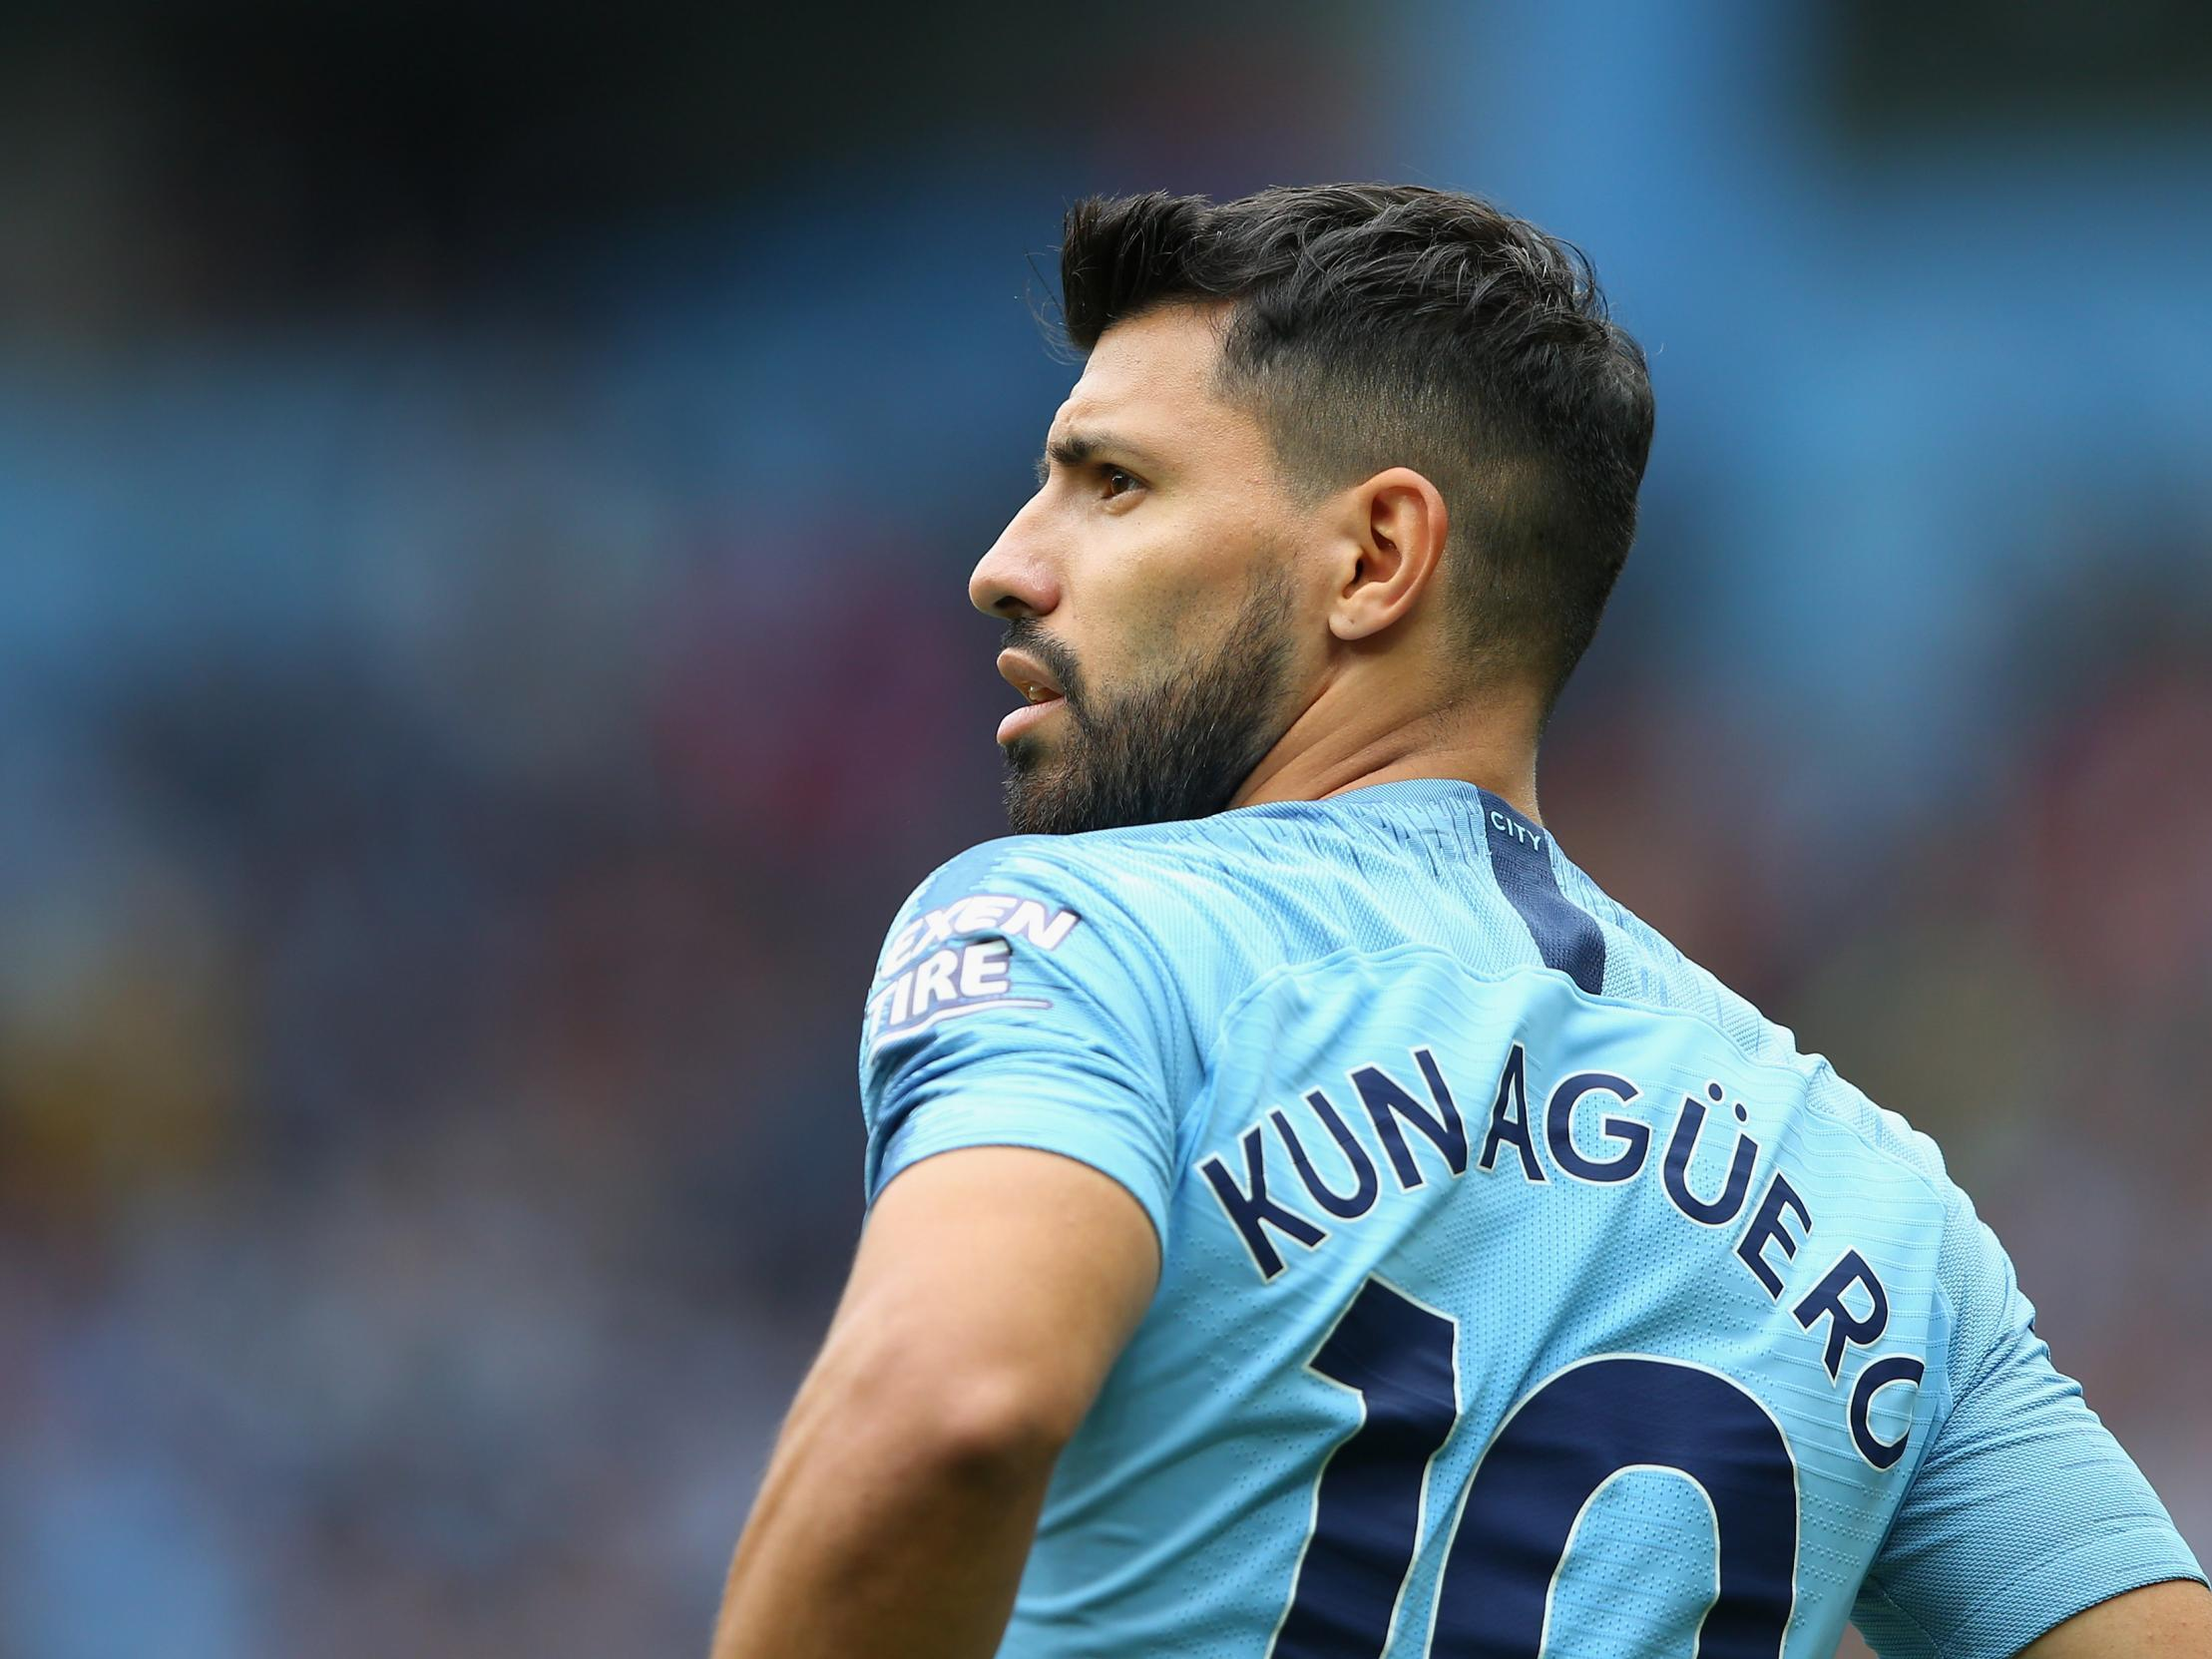 Sergio Aguero signs Manchester City contract extension until 2021 making